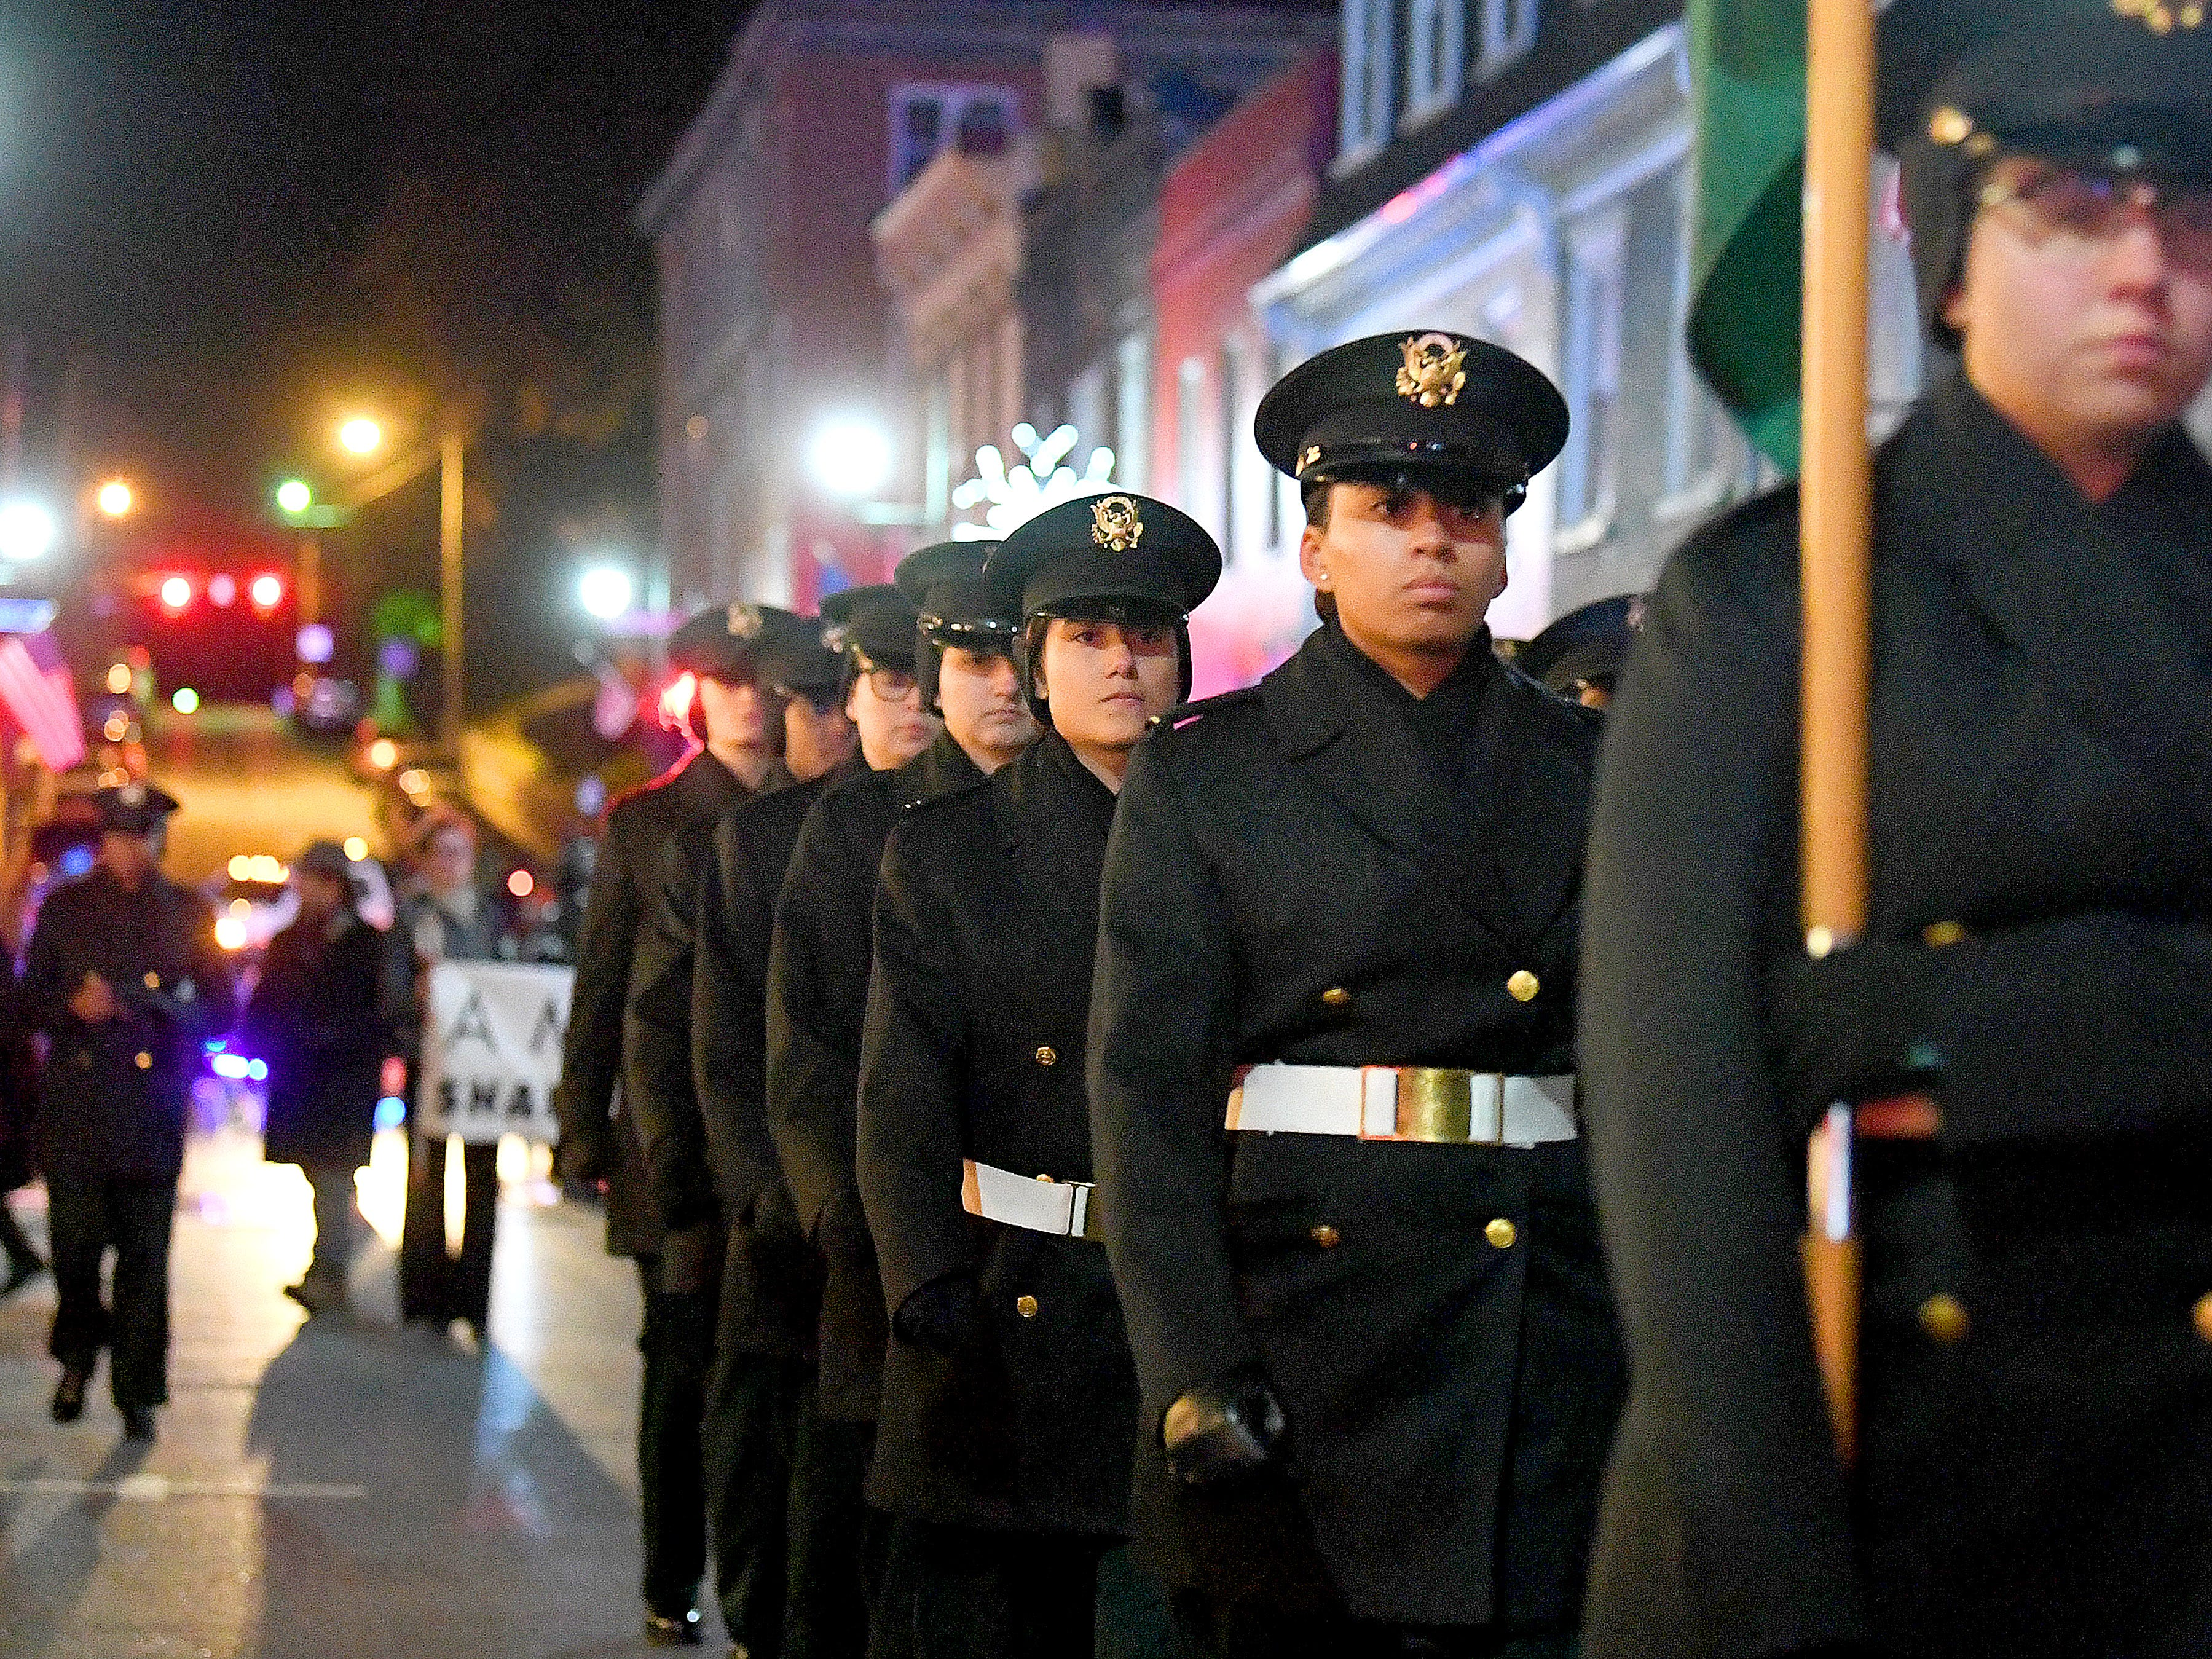 Cadets from Mary Baldwin University's Virginia Women's Institute for Leadership march during the Staunton Christmas Parade on Monday, Nov. 26, 2018.